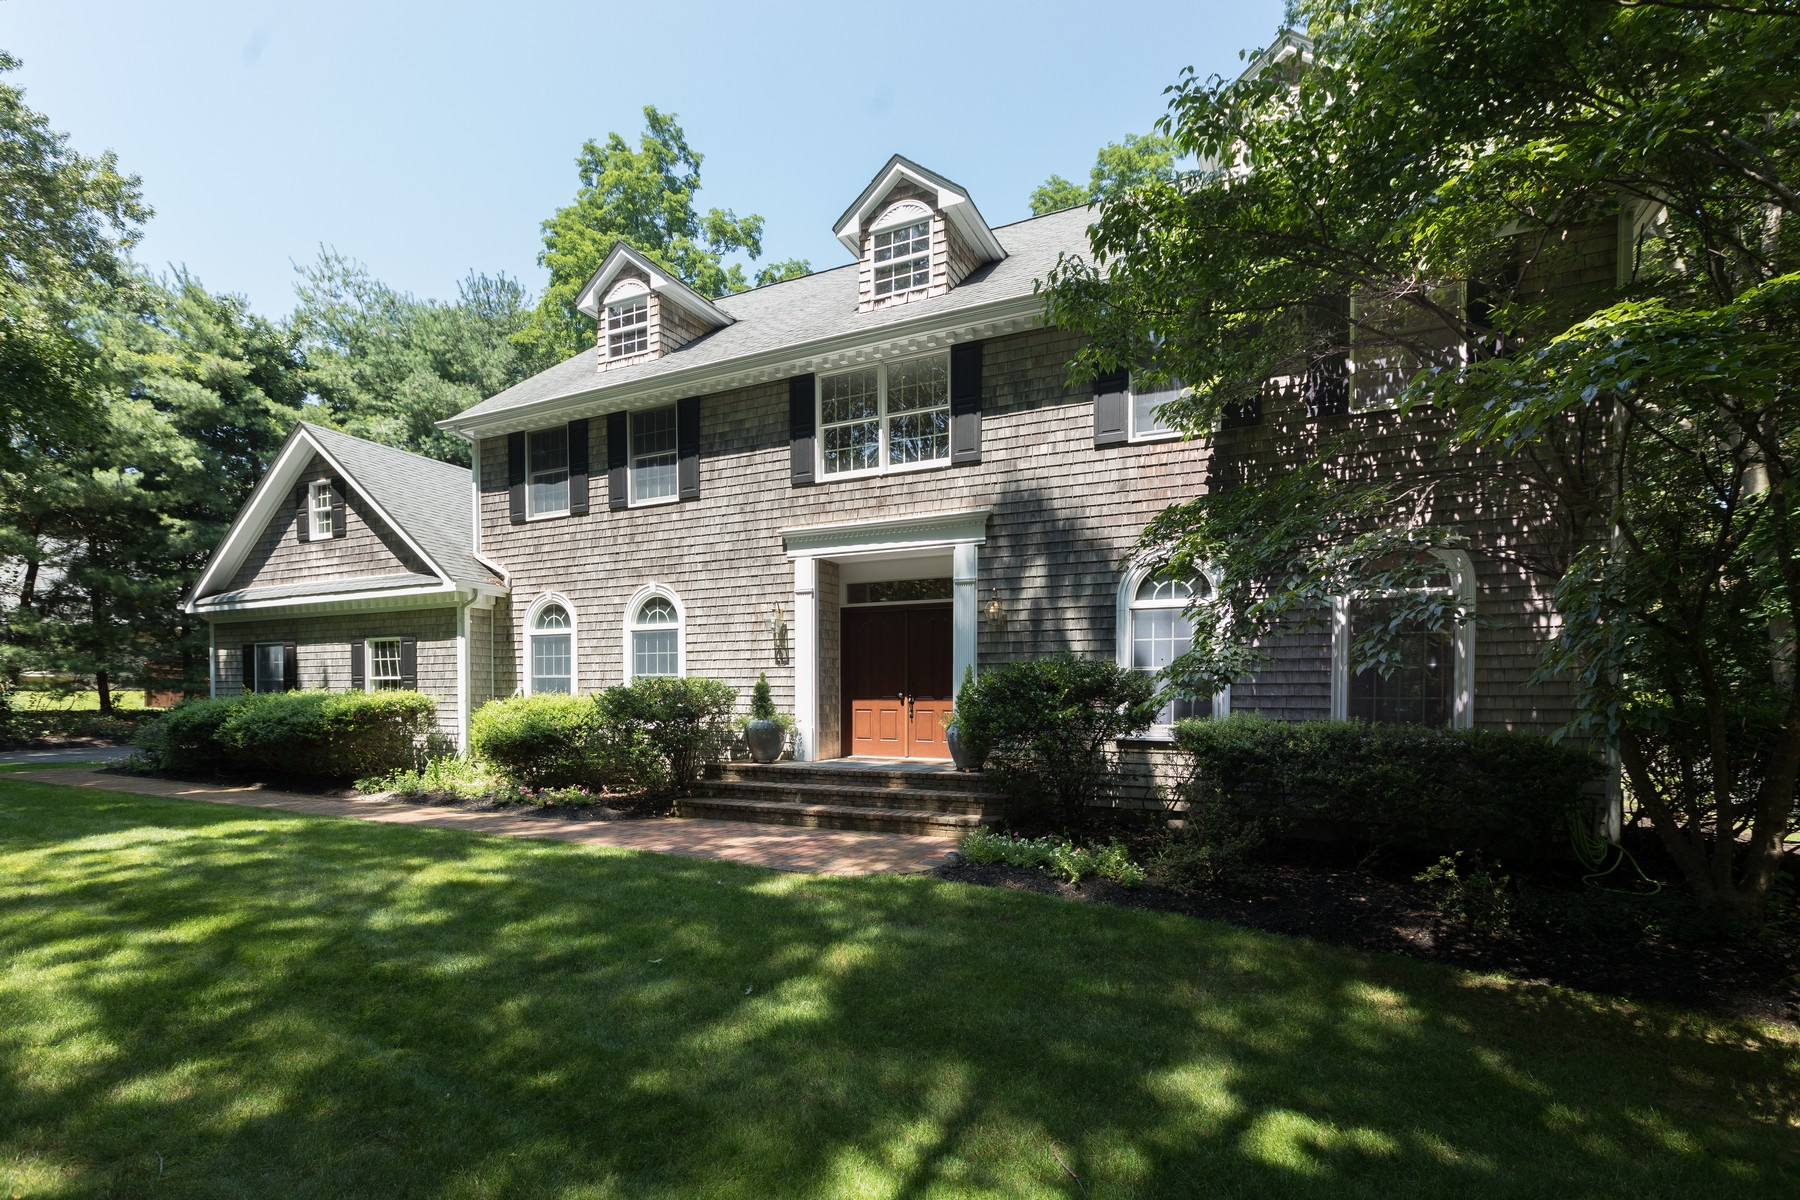 Single Family Homes for Sale at Old Field 120 Mt Grey Rd Old Field, New York 11733 United States